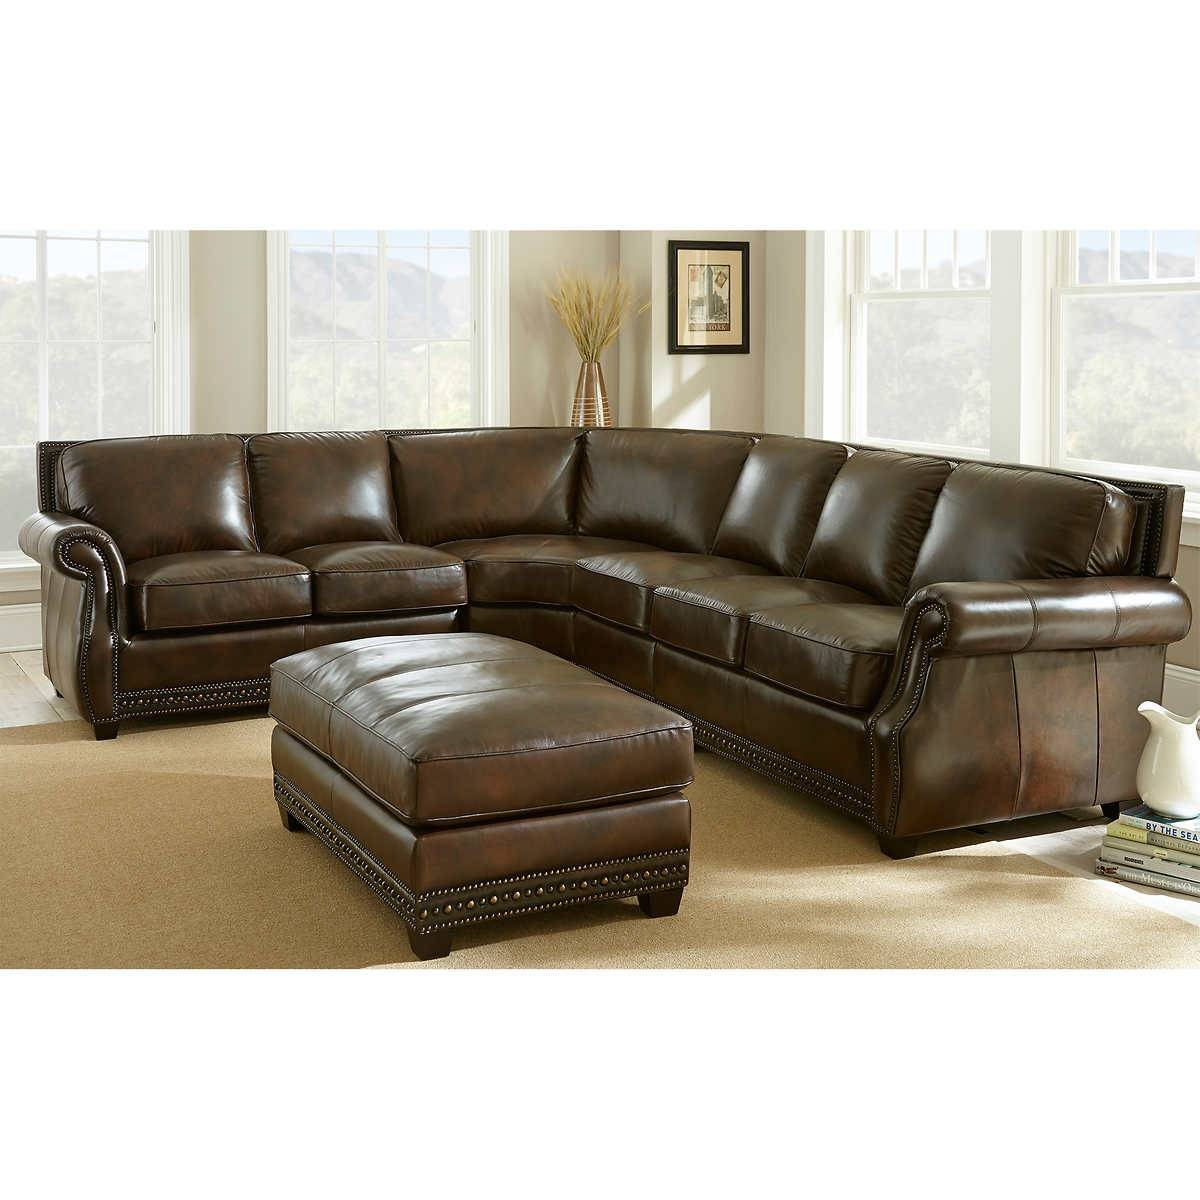 Turquoise Leather Sectional Sofa - Cleanupflorida for Abbyson Living Charlotte Dark Brown Sectional Sofa And Ottoman (Image 28 of 30)